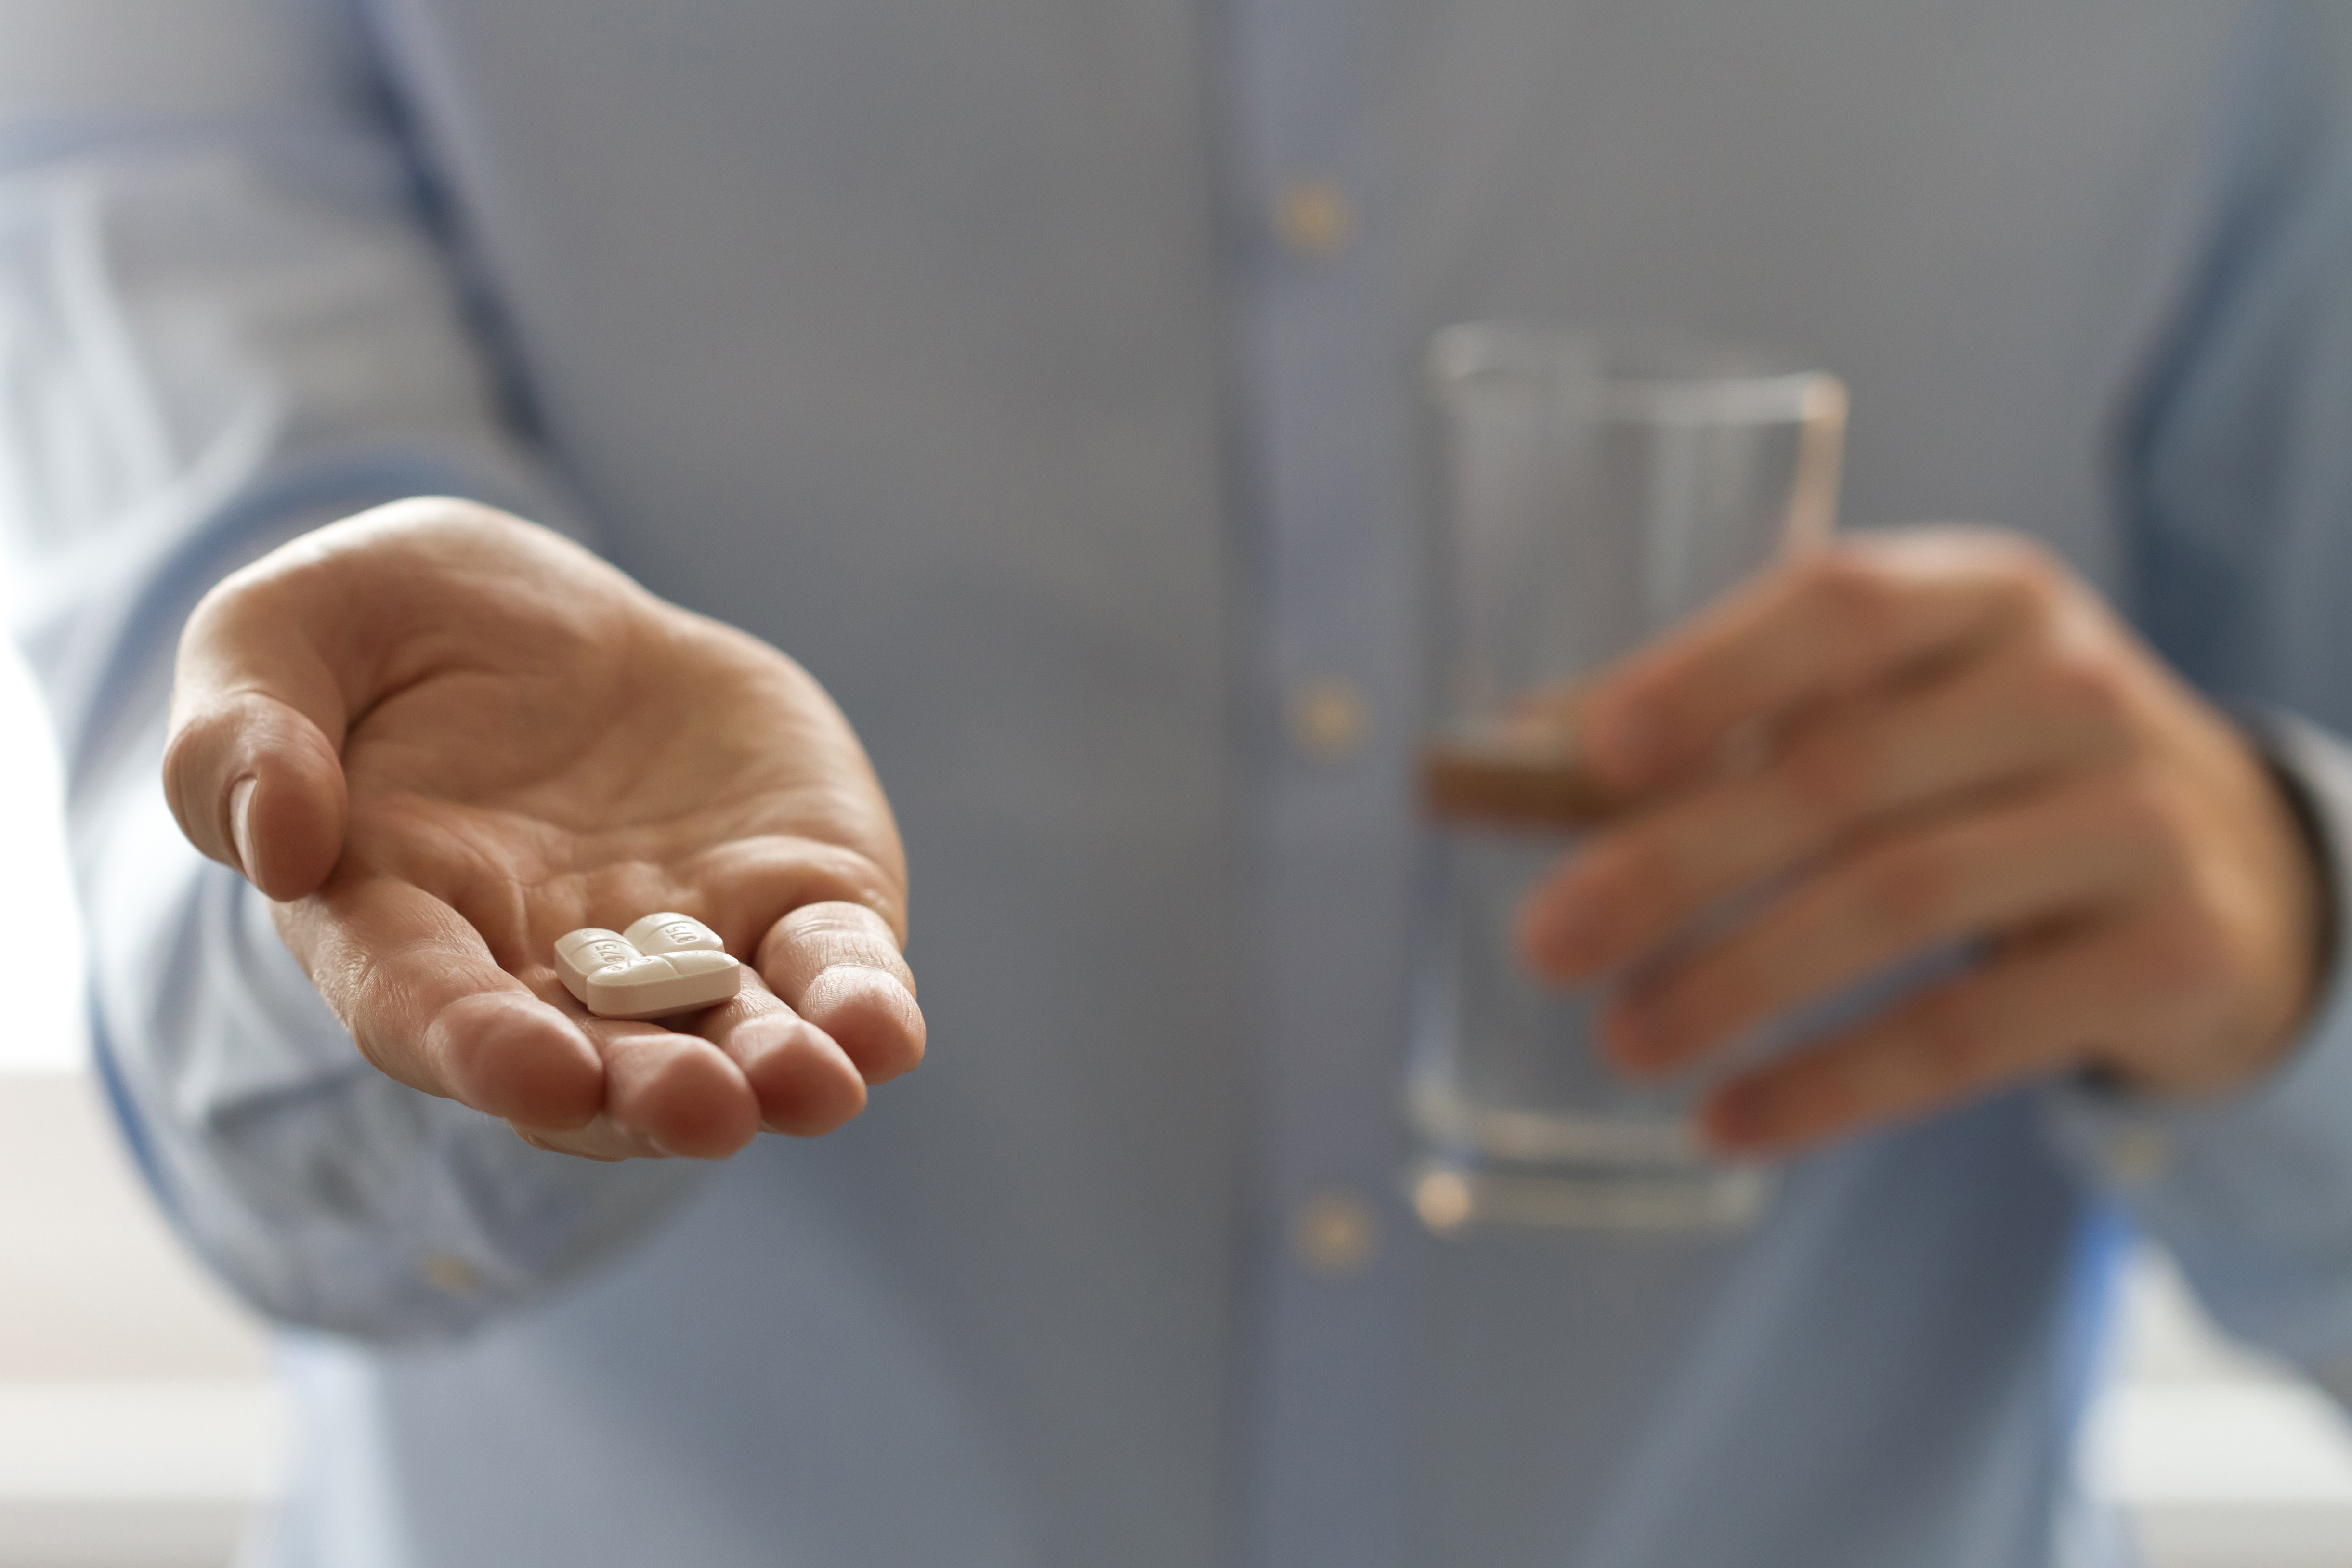 Man holding pills in one hand and glass